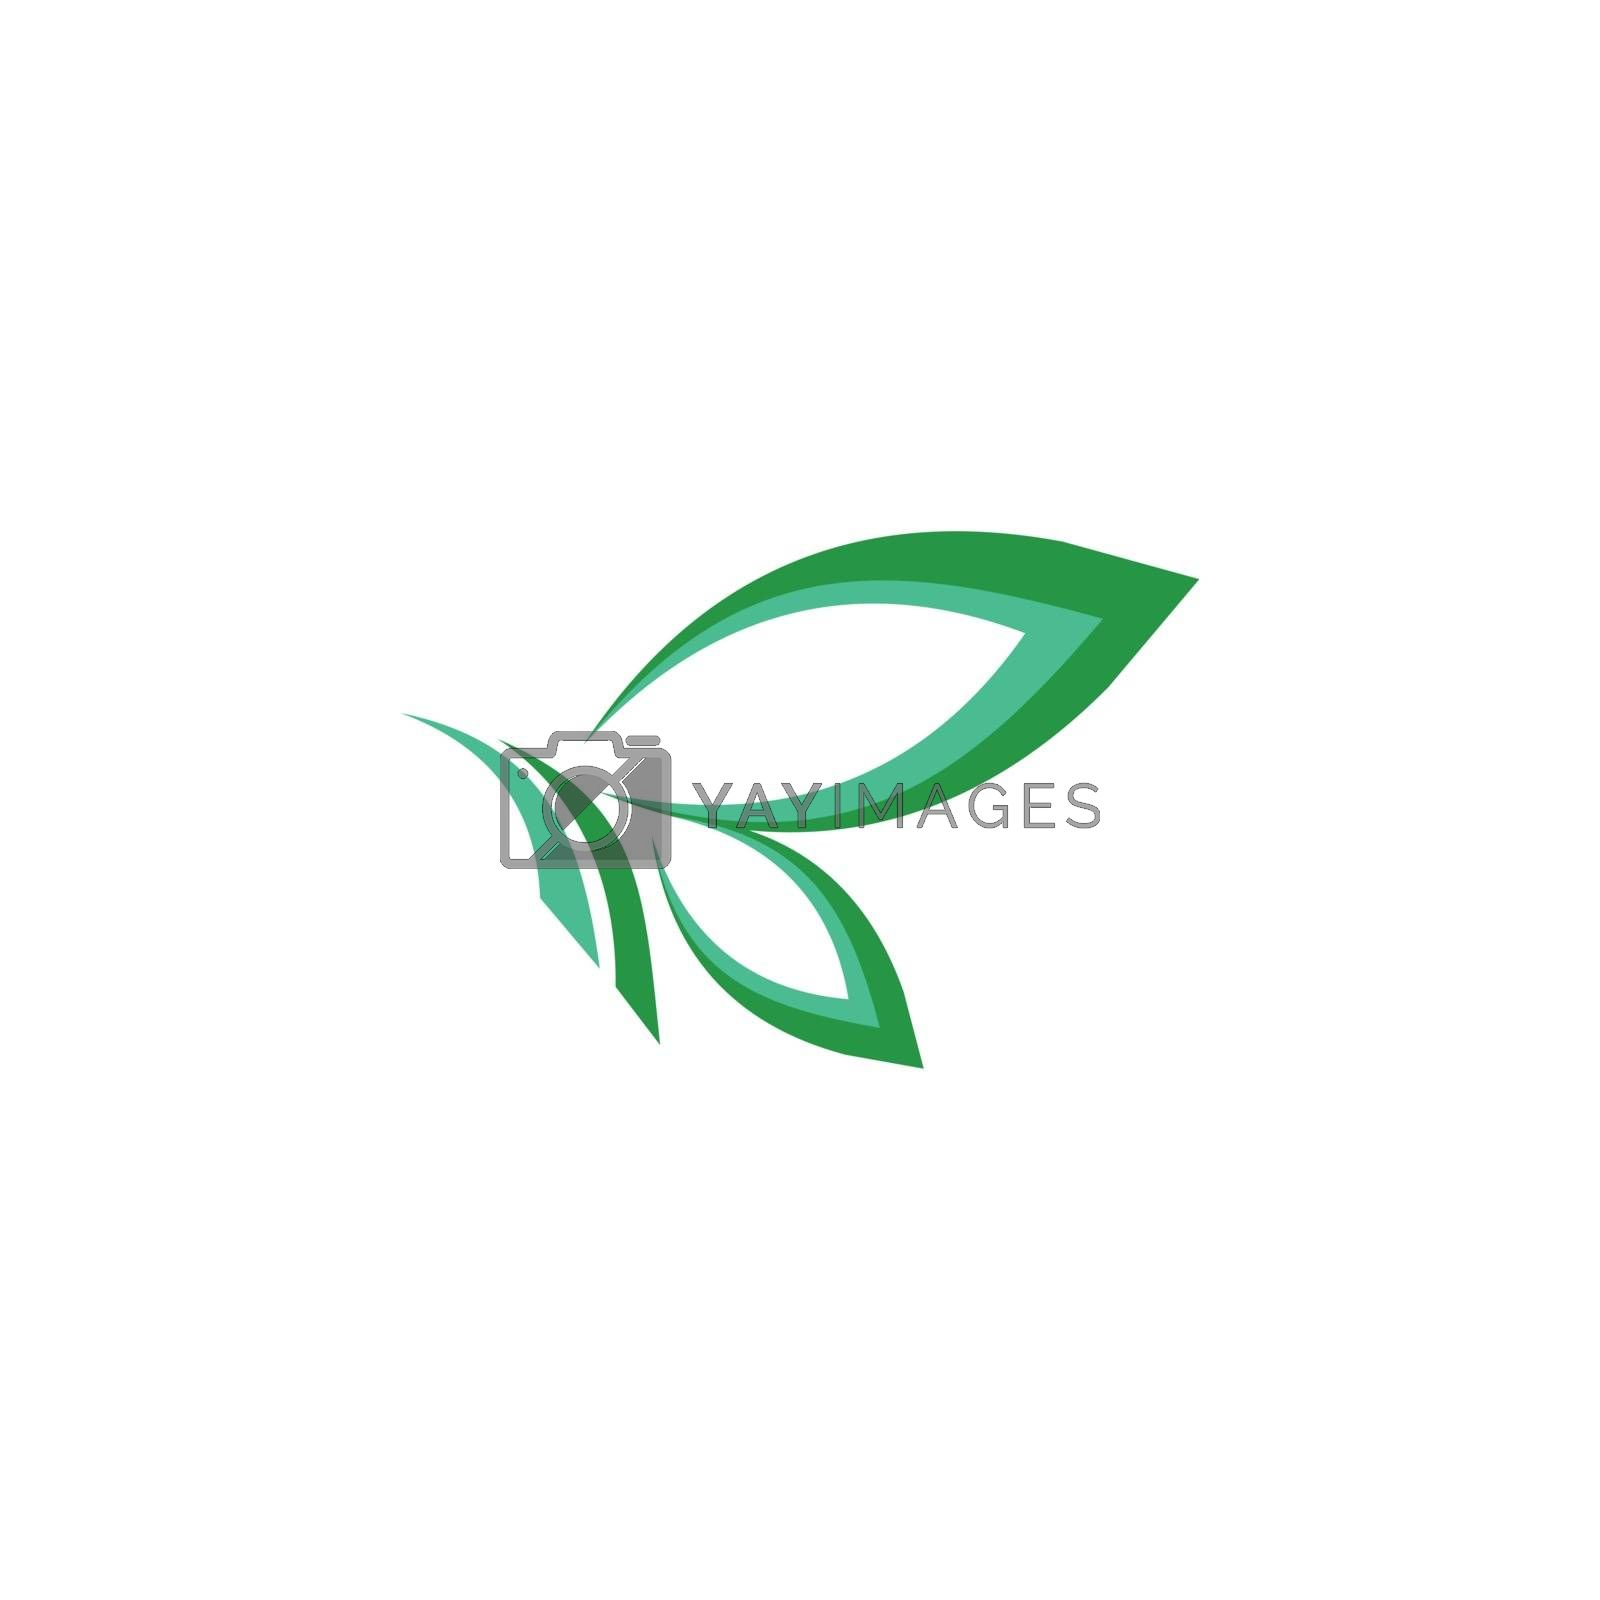 green leaves butterfly logo symbol icon vector design, butterfly illustration logo concept business